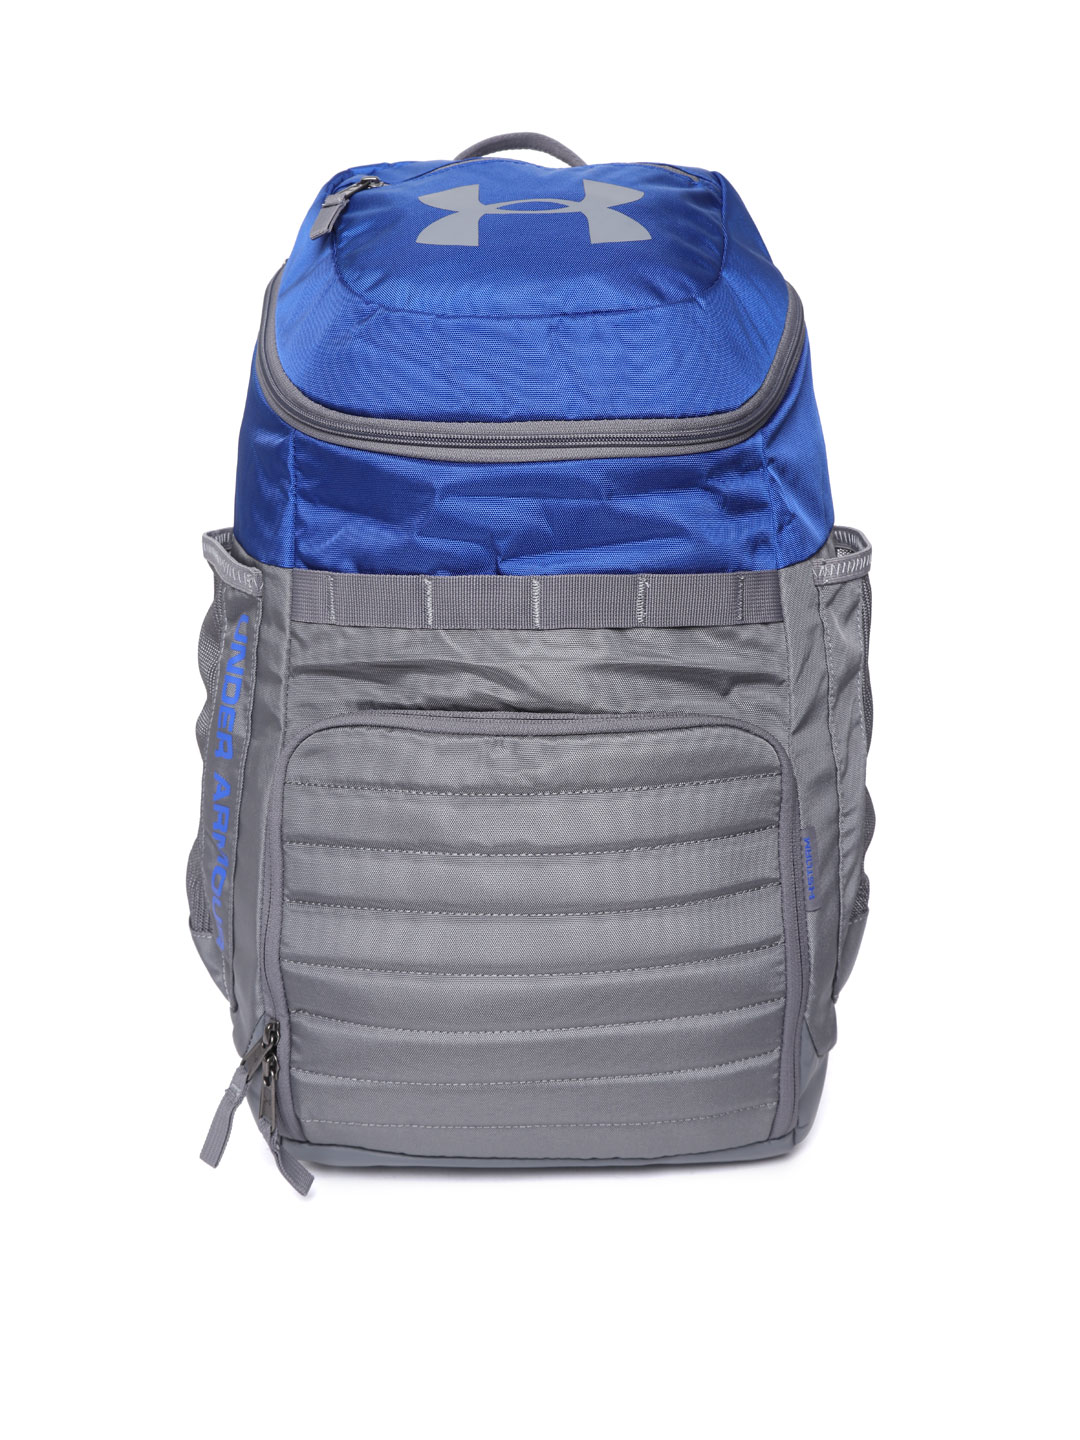 73092eb4a5bb Under Armour Backpacks - Buy Under Armour Backpacks online in India